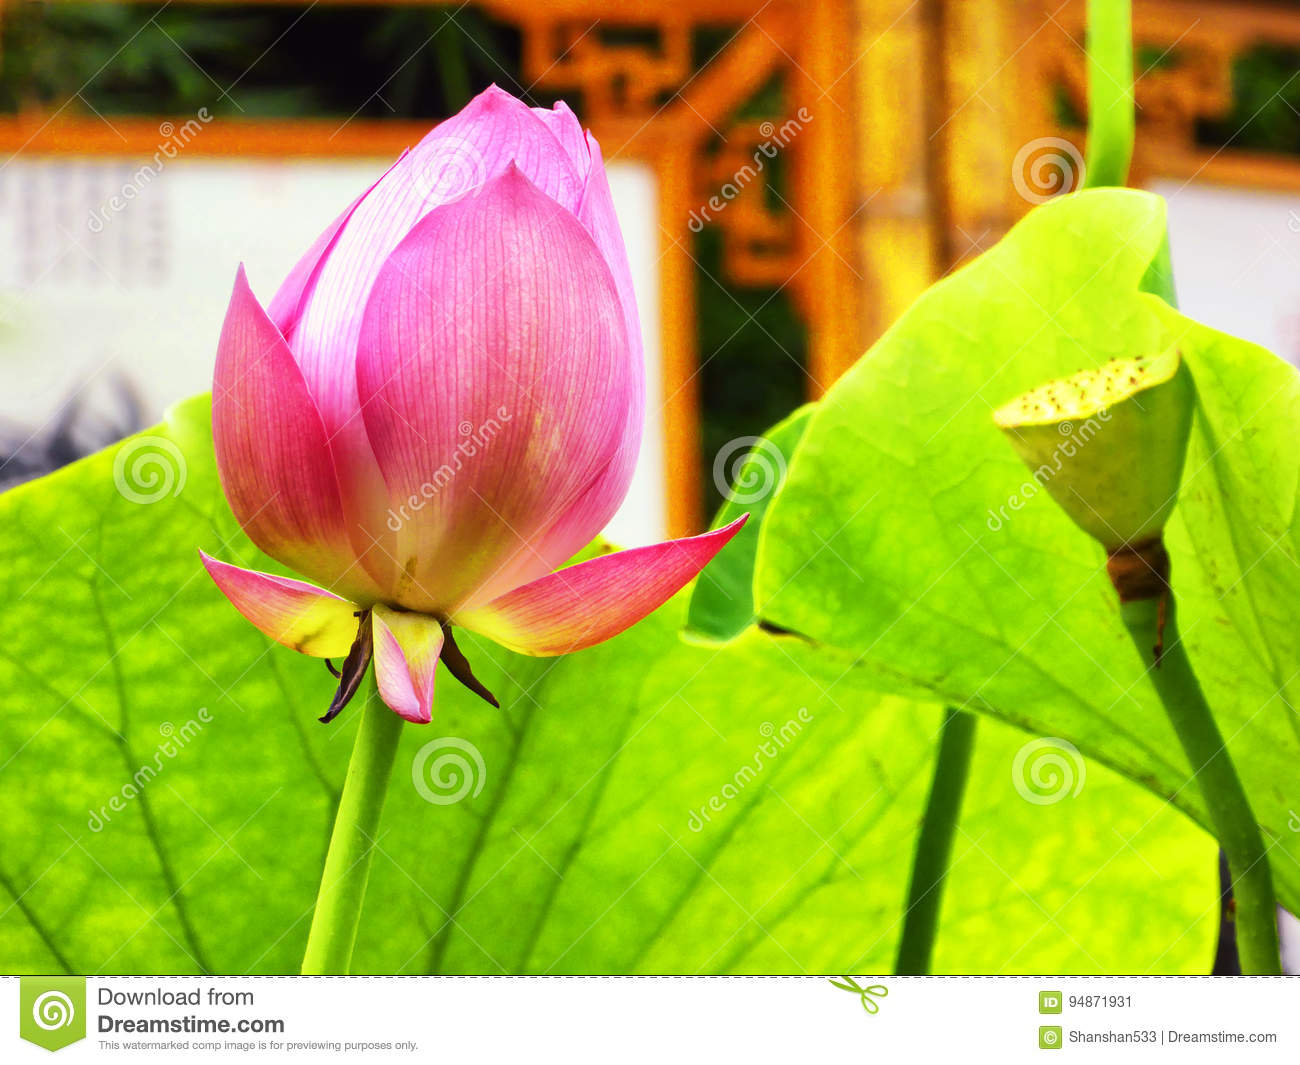 Lotus flower root and bud stock image image of nanxiang 94871931 download lotus flower root and bud stock image image of nanxiang 94871931 mightylinksfo